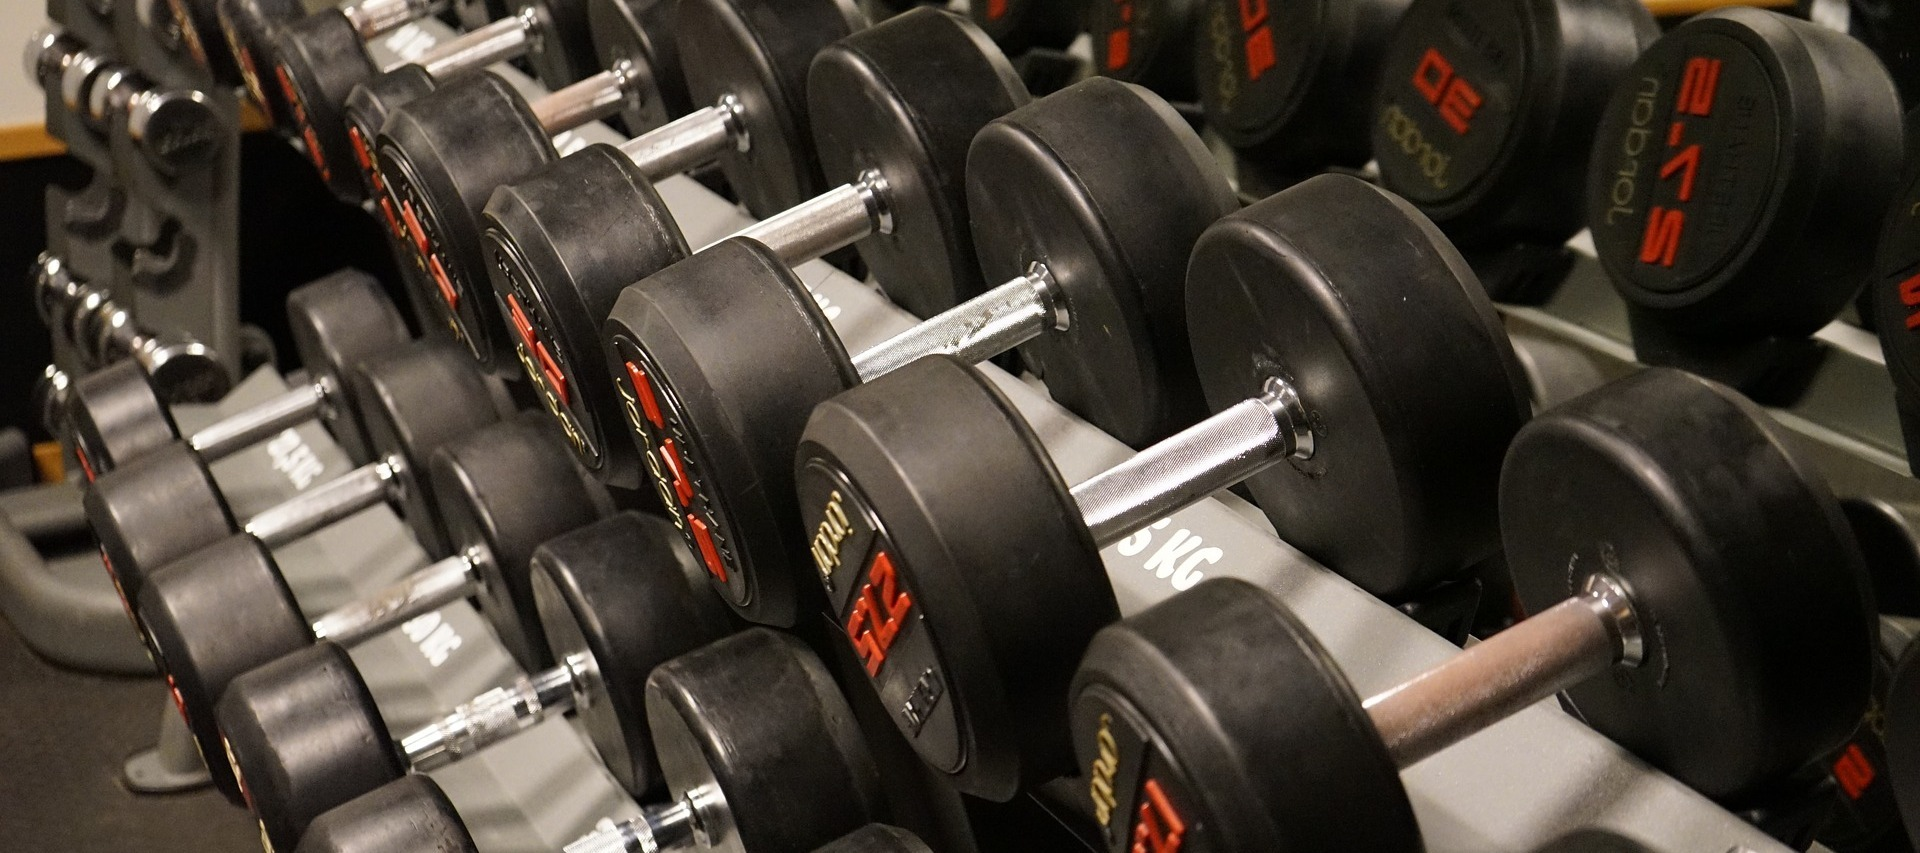 Weight Training Roundup: A Review of Programs and Features